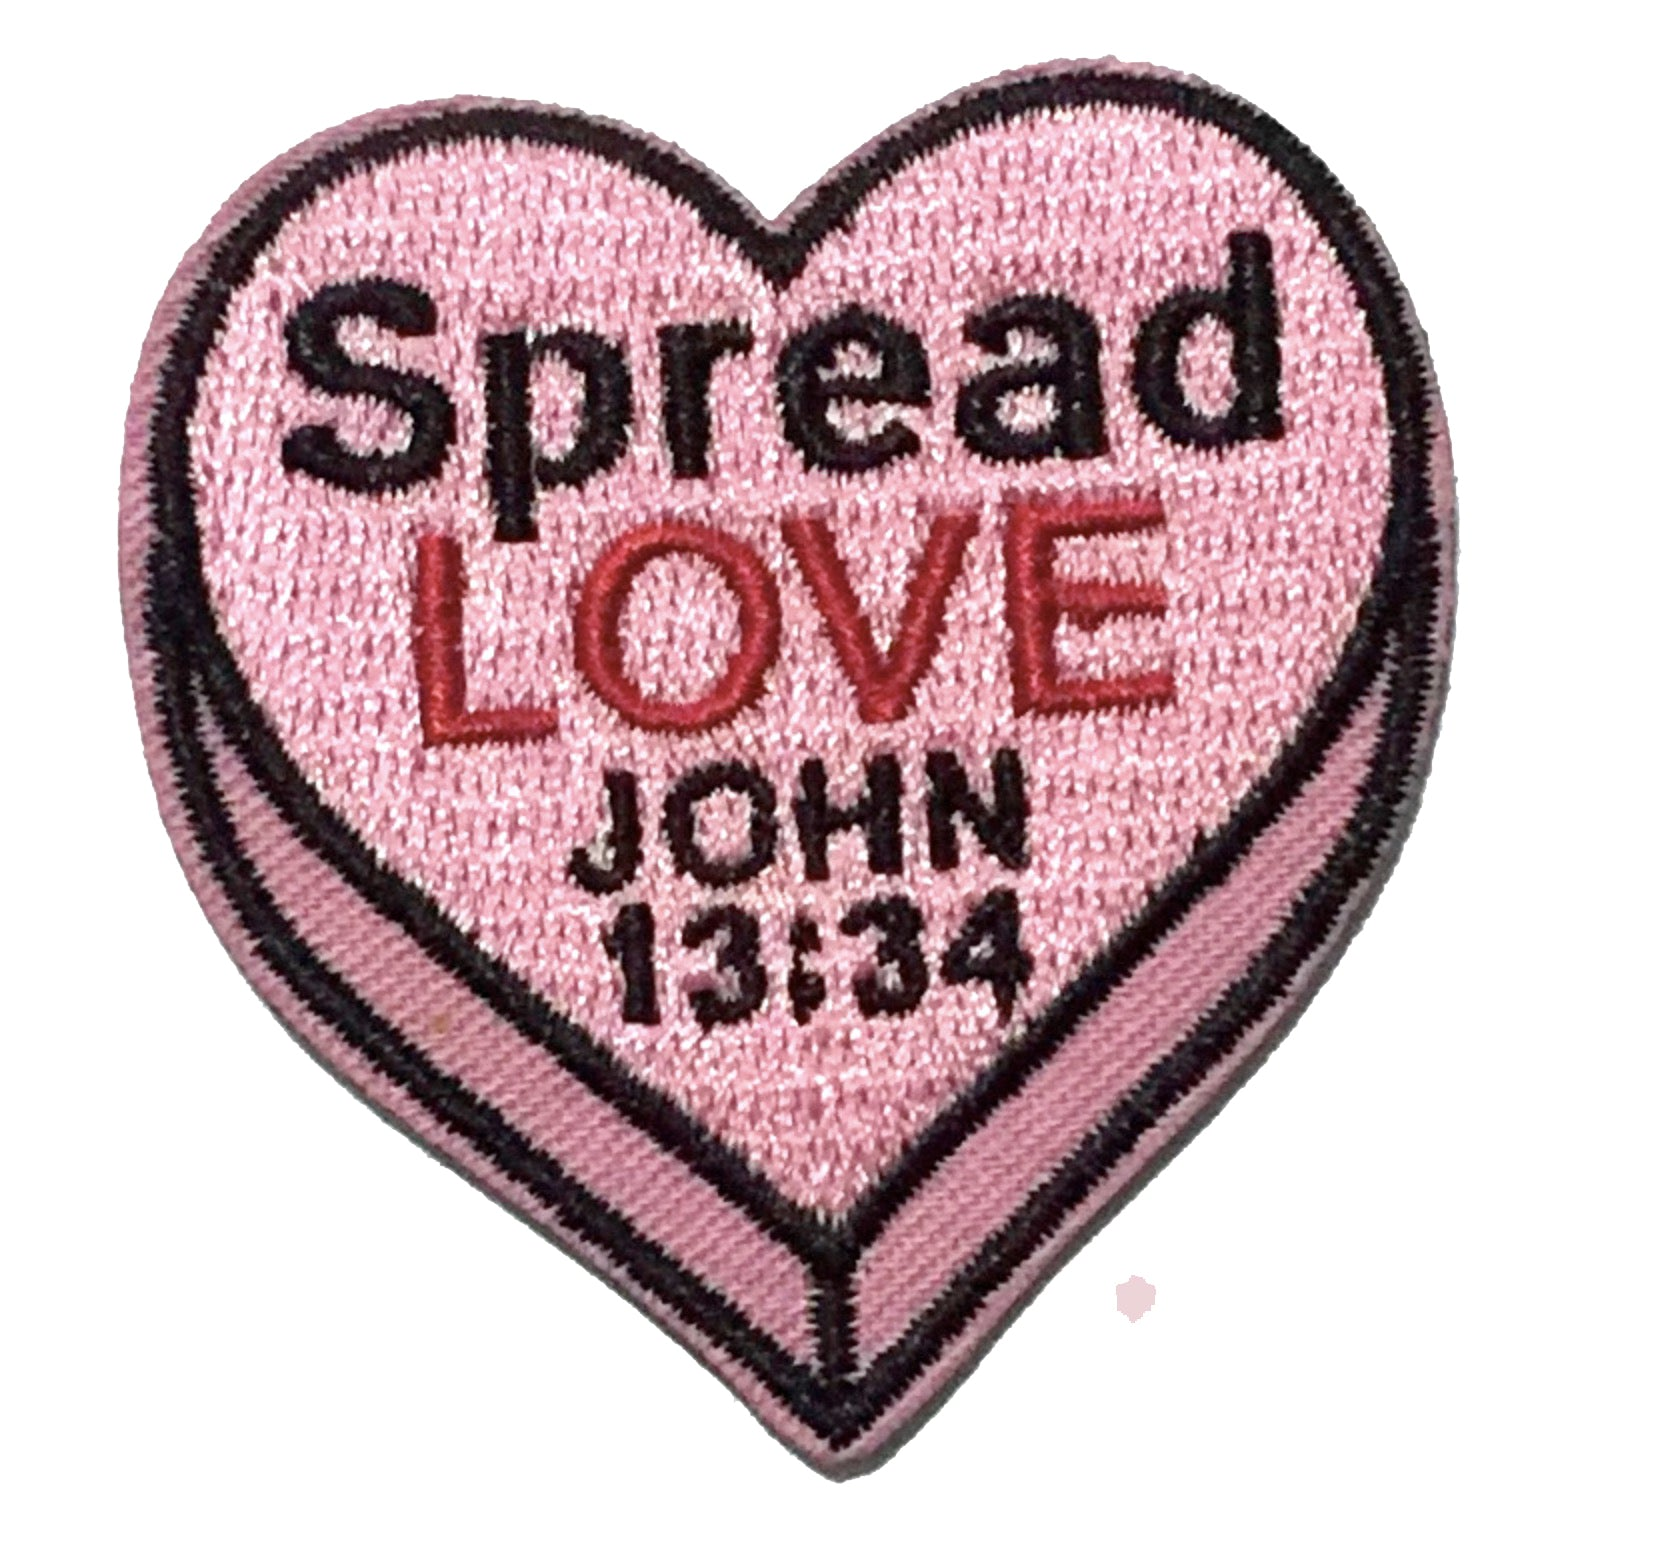 Spread Love Heart Embroidery Patch